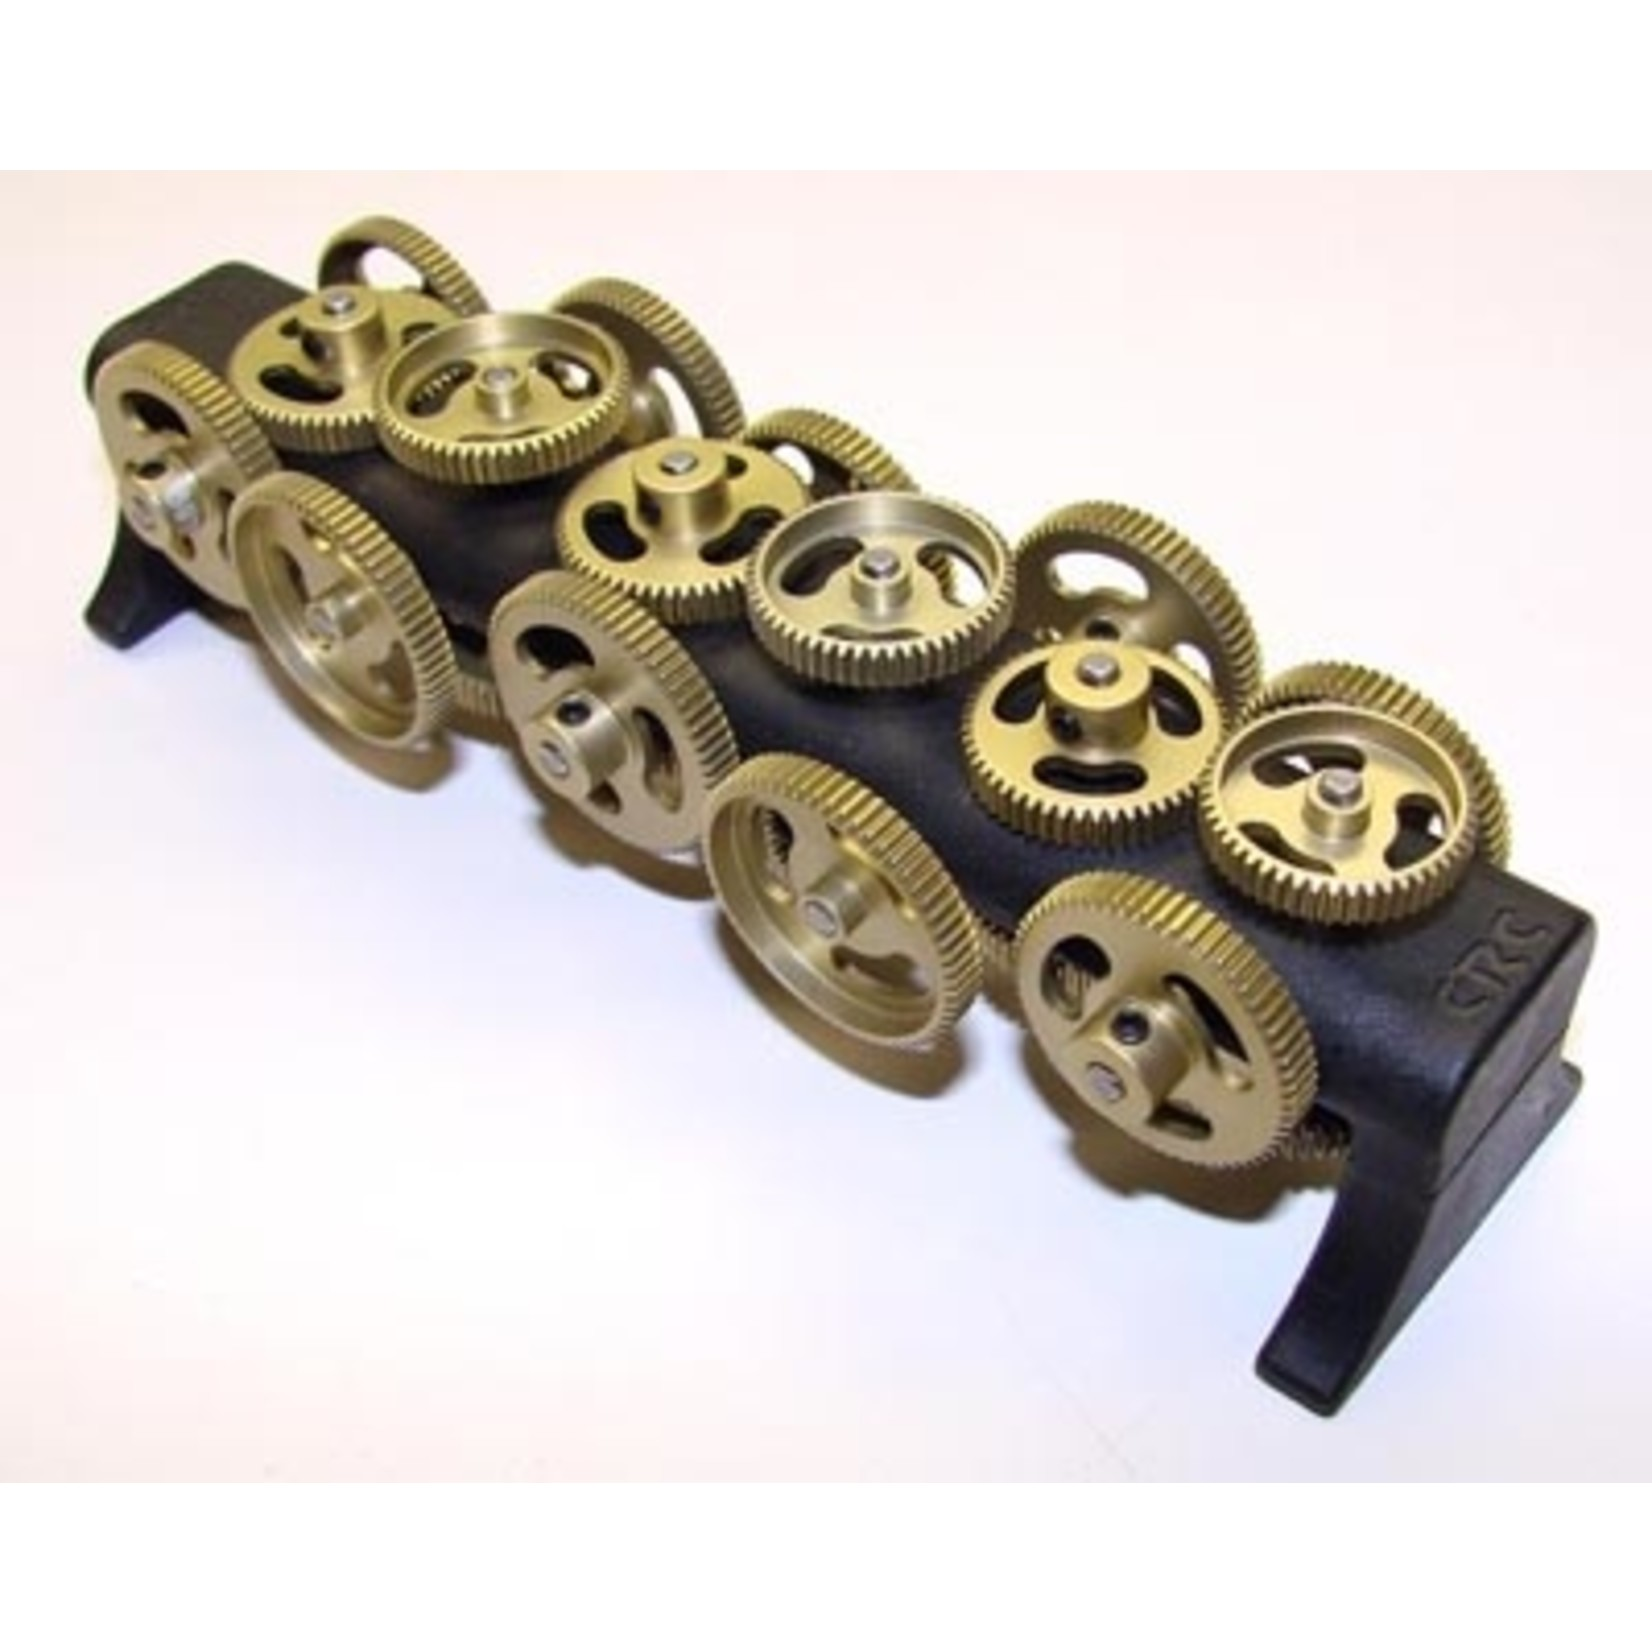 Calandra Racing Concepts (CRC) Loaded Pinion Tree of Gold- Large sizes, 48T - 69T